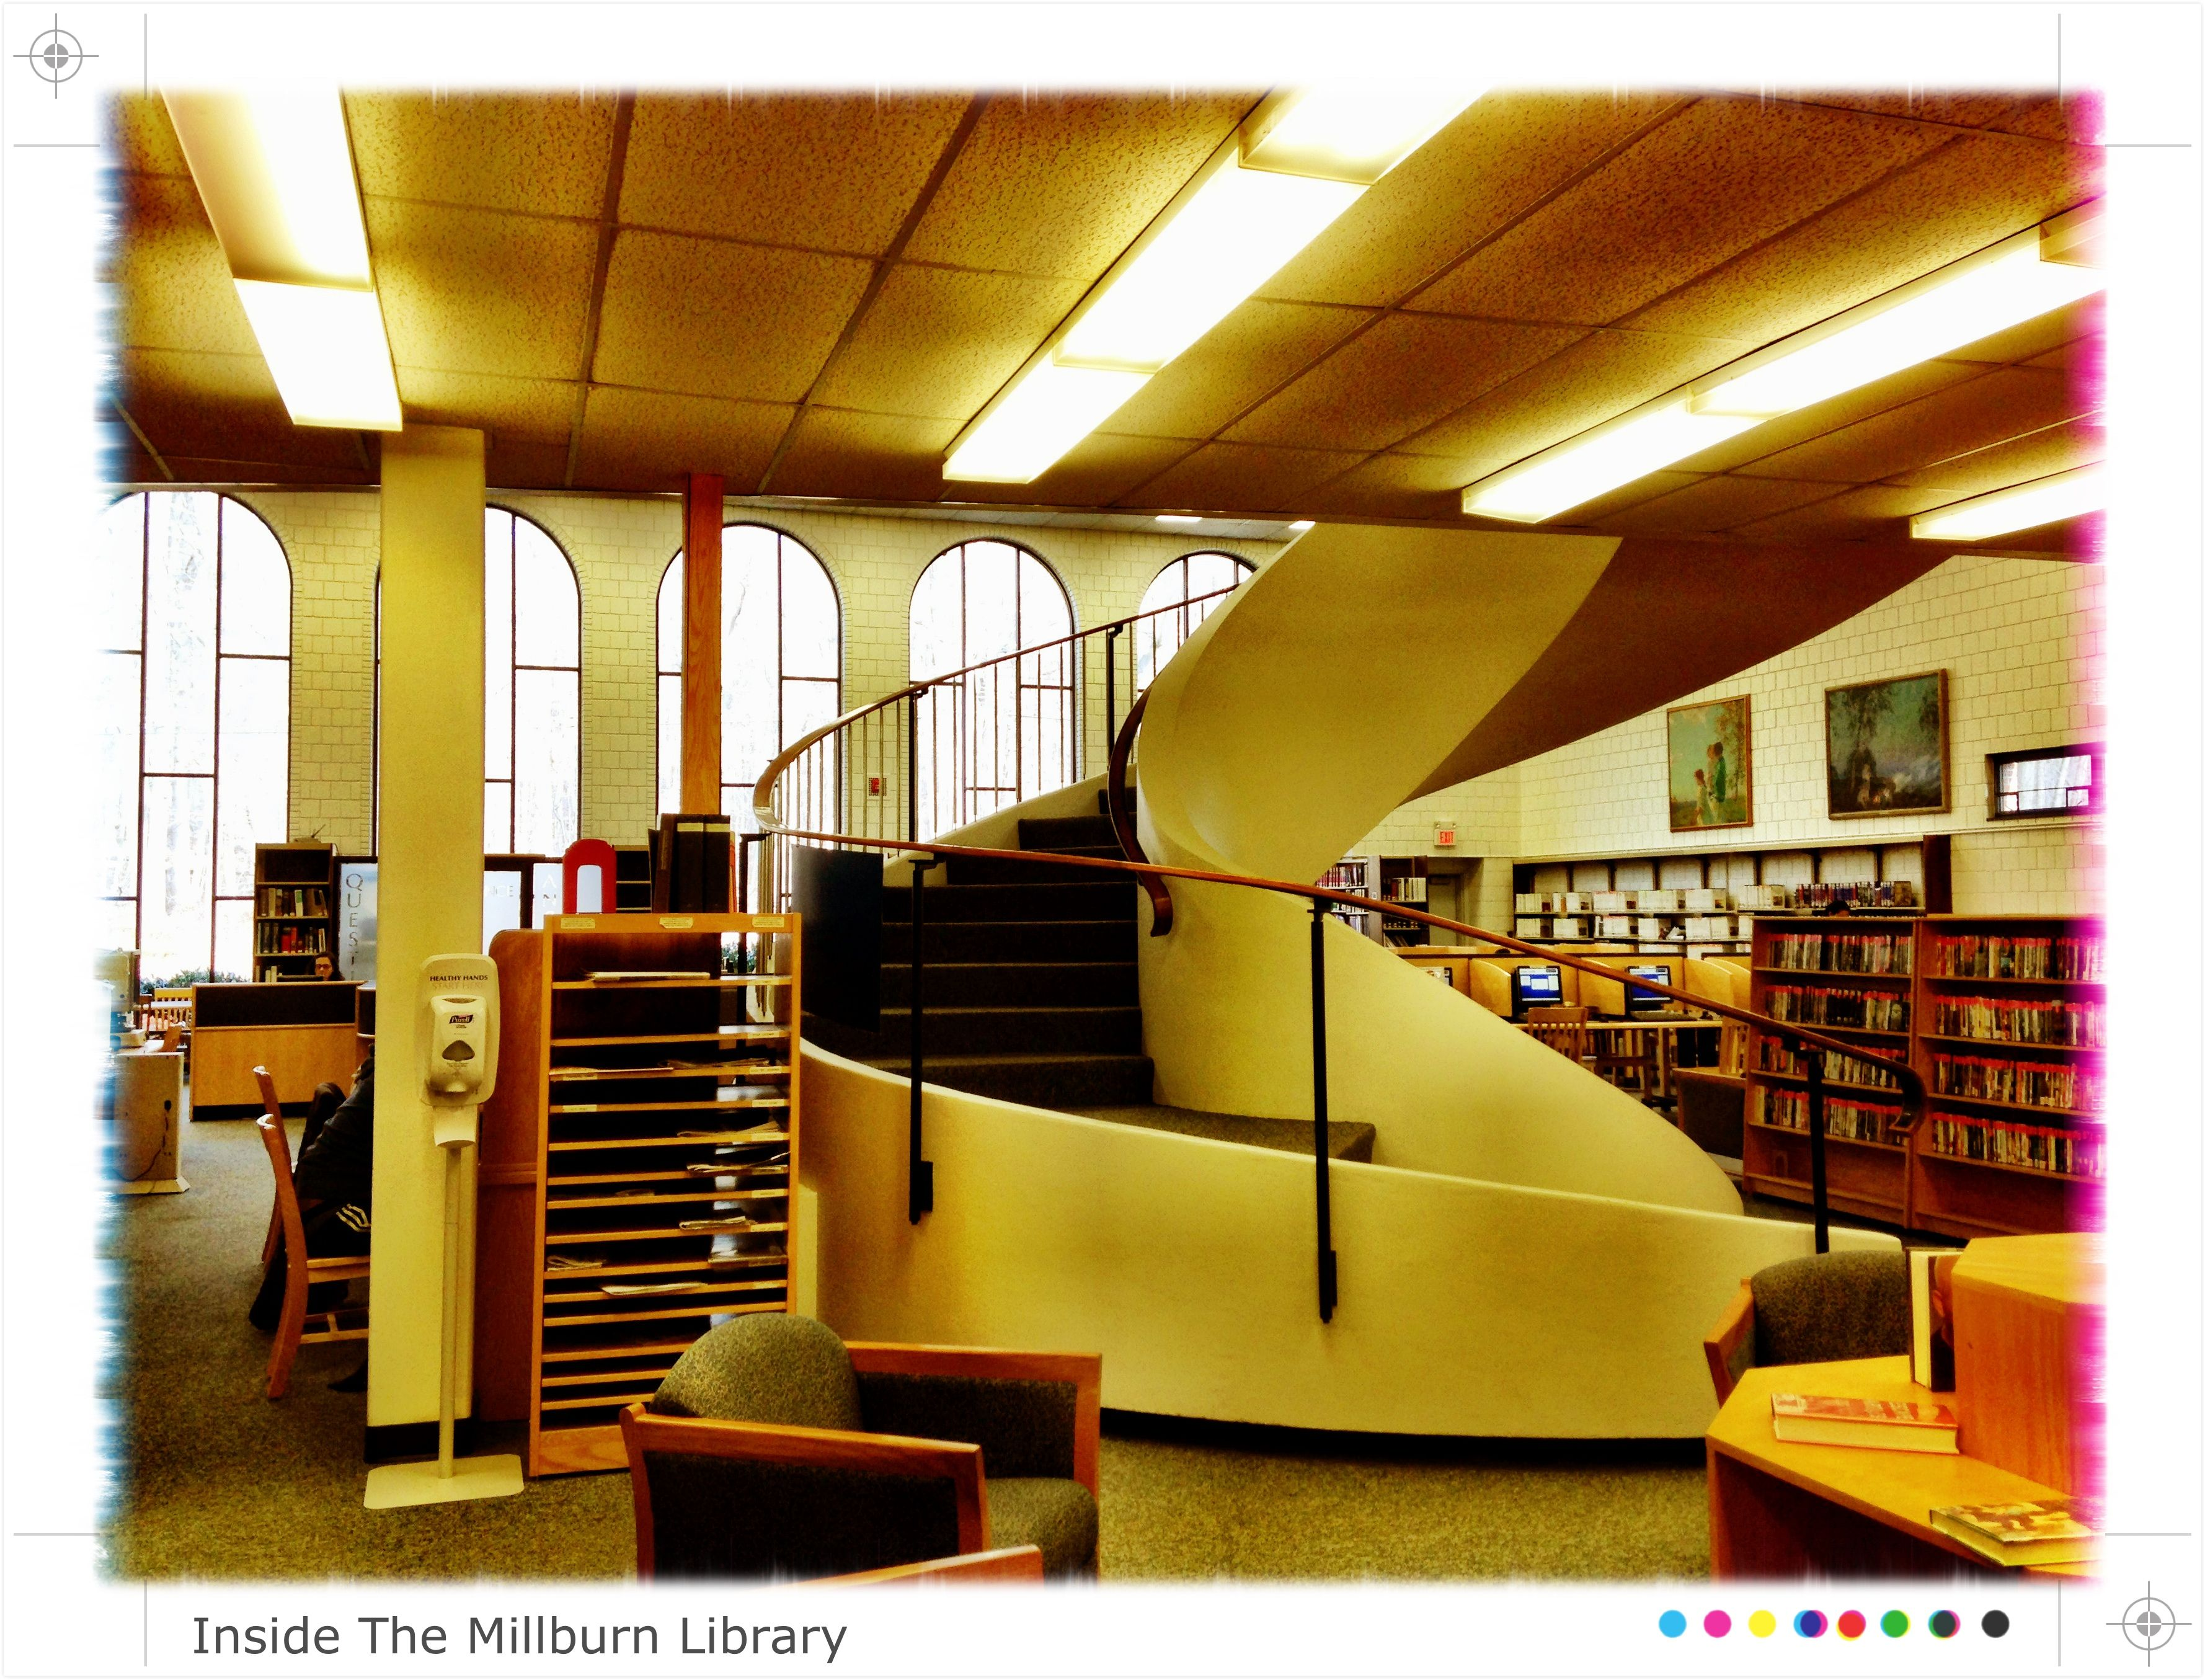 The Milburn free public library circular staircase